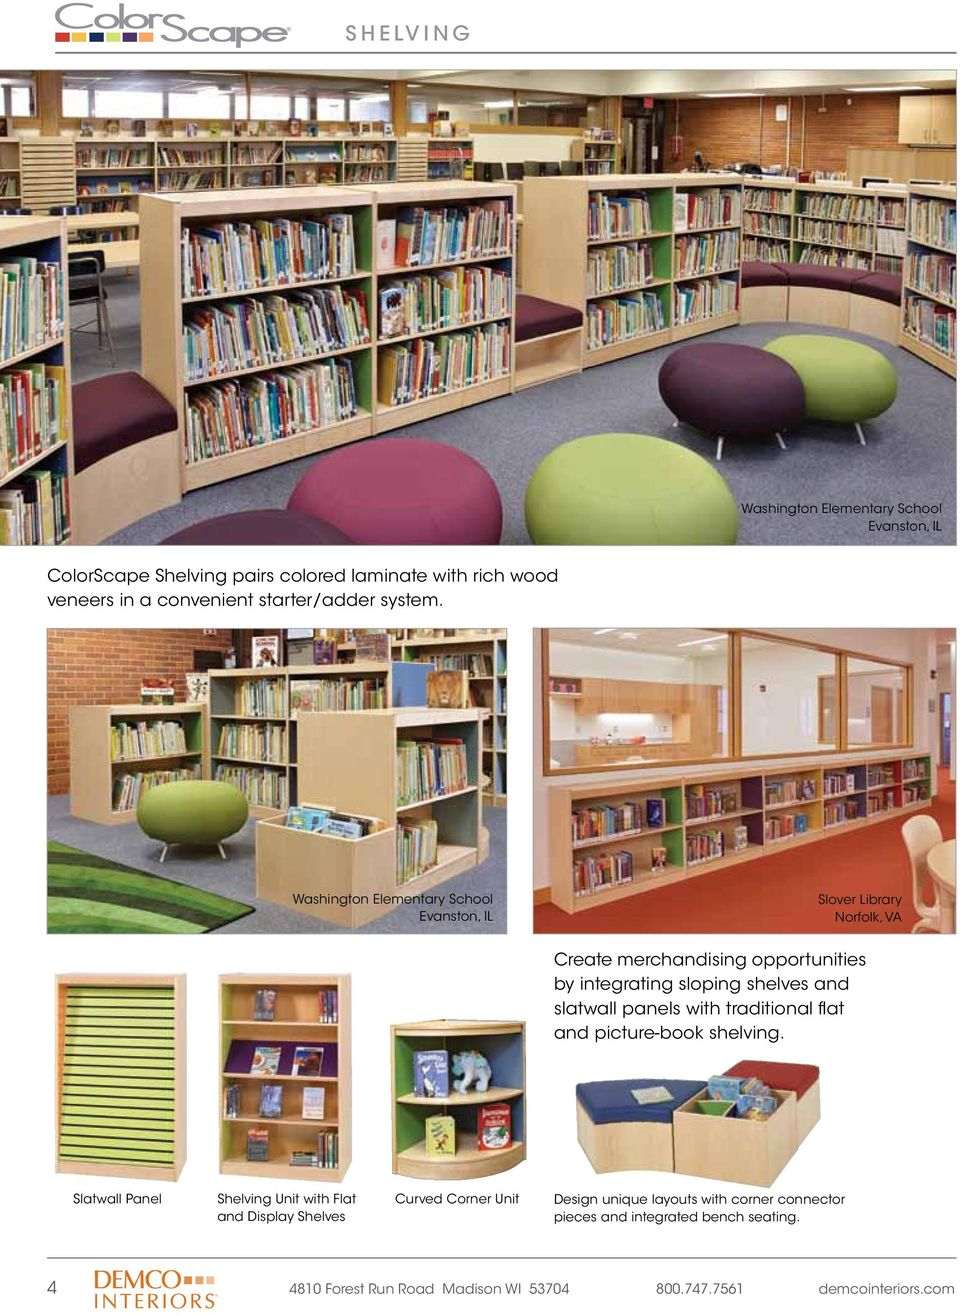 Washington Elementary School Evanston, IL Slover Library Norfolk, VA Create merchandising opportunities by integrating sloping shelves and slatwall